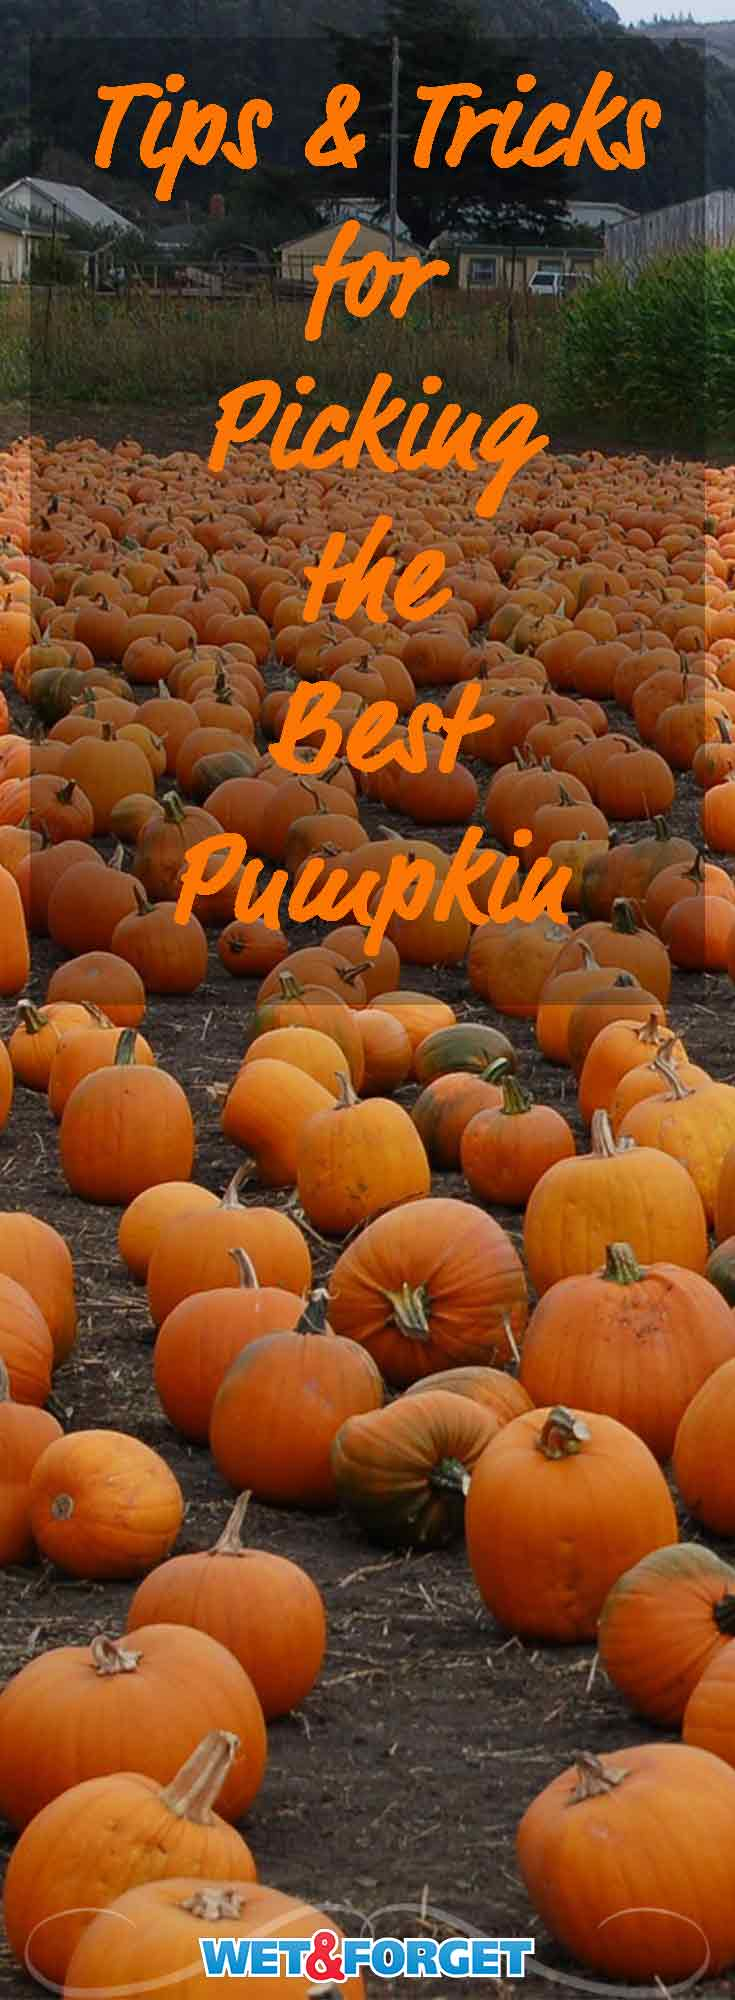 Last minute pumpkin picking can be difficult. Use our guide to help weave through the pumpkin patch to find the best pumpkin!